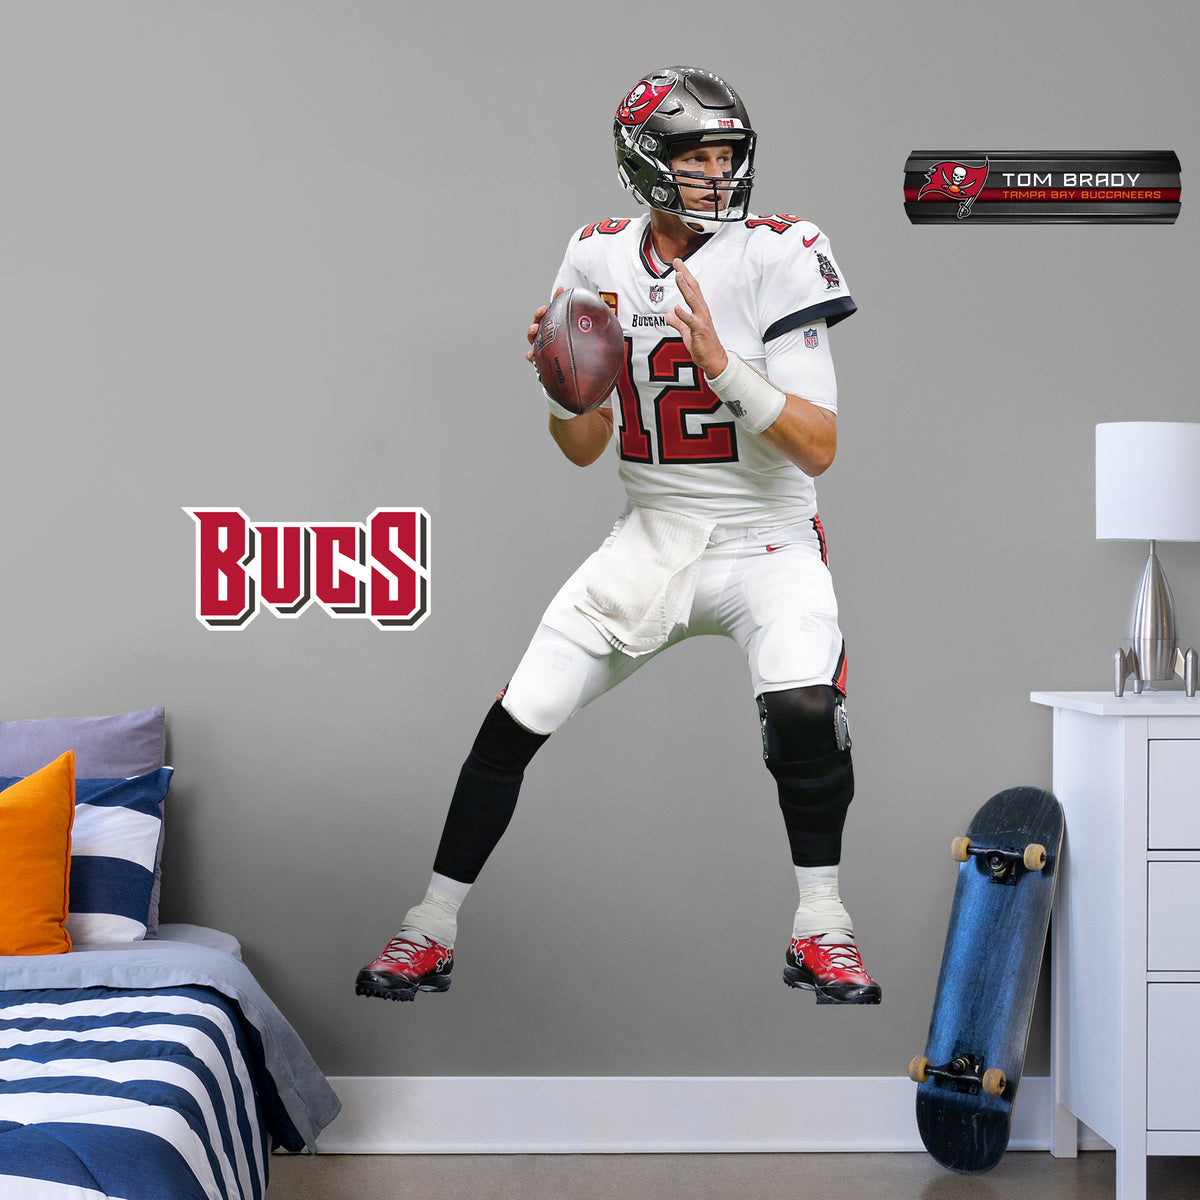 Tom Brady Officially Licensed Nfl Removable Wall Decal